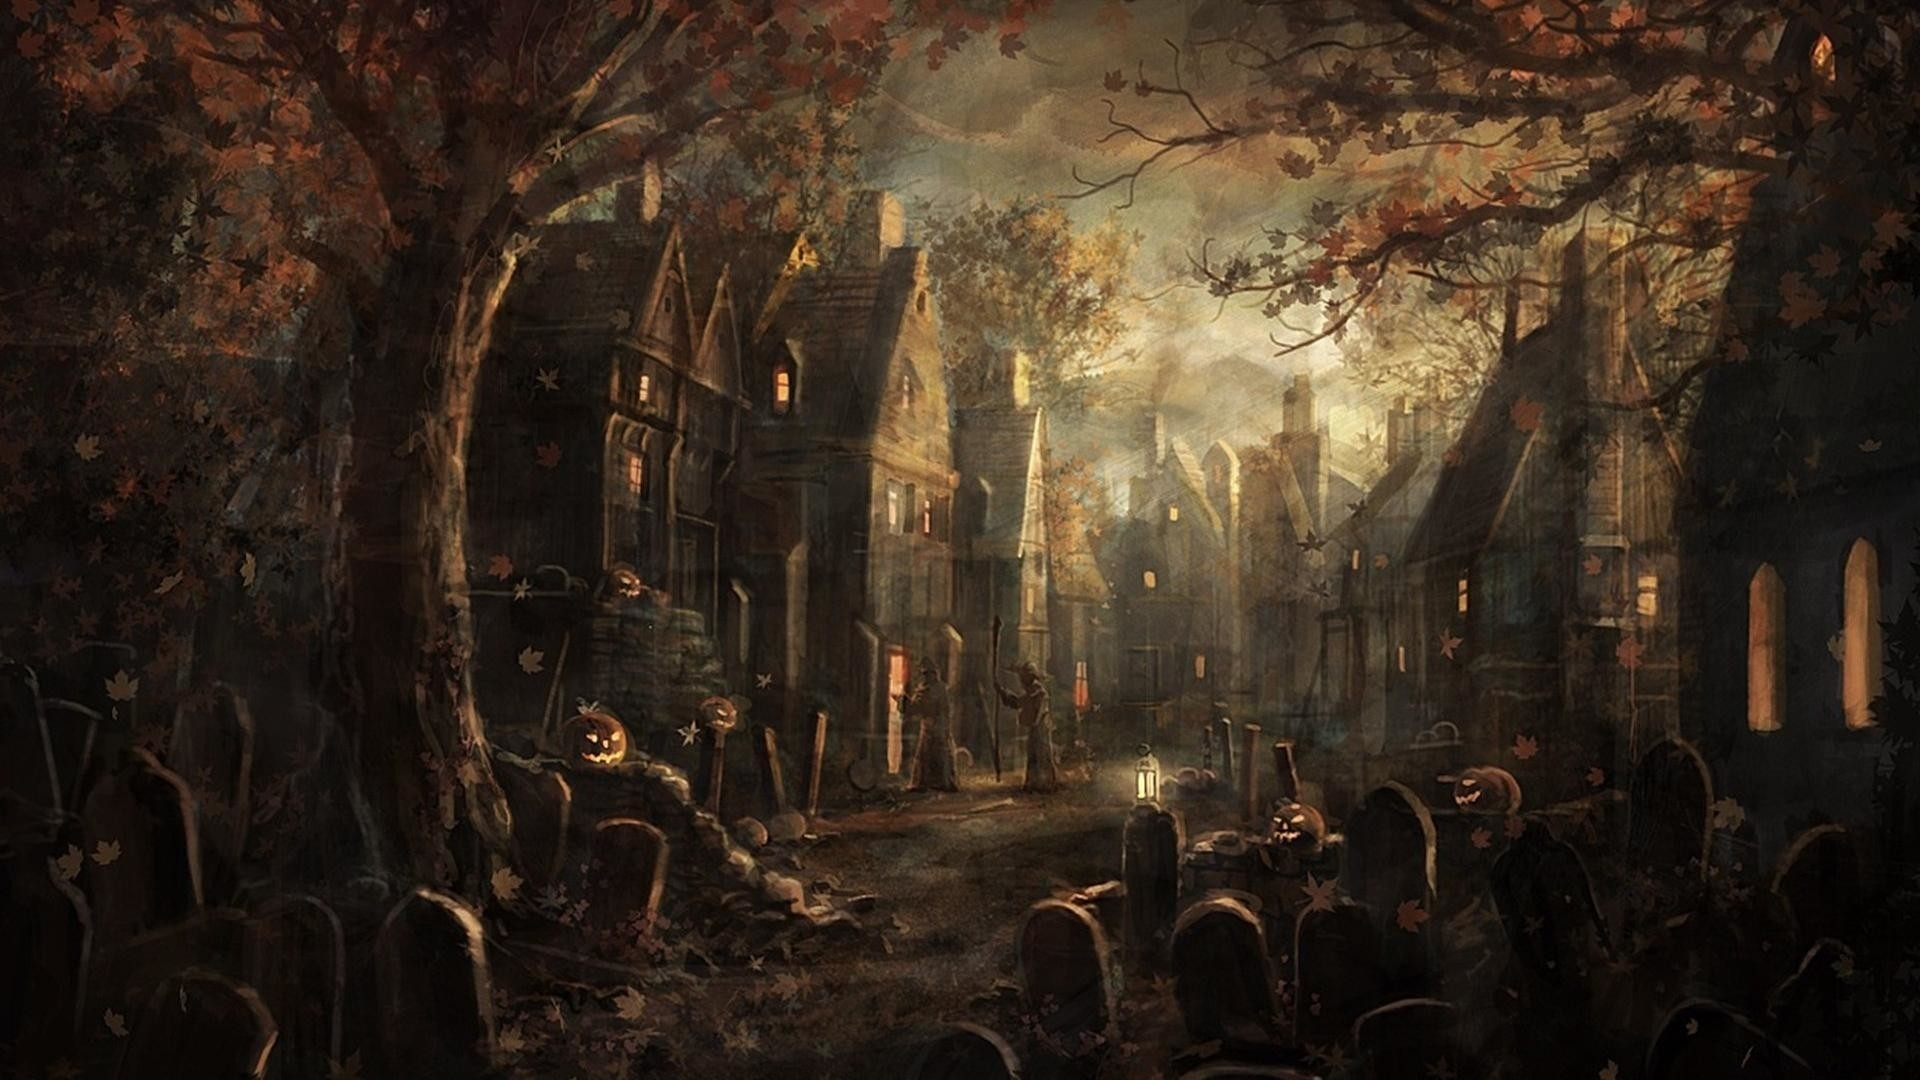 1920x1080 hd halloween wallpaper (66+ images)